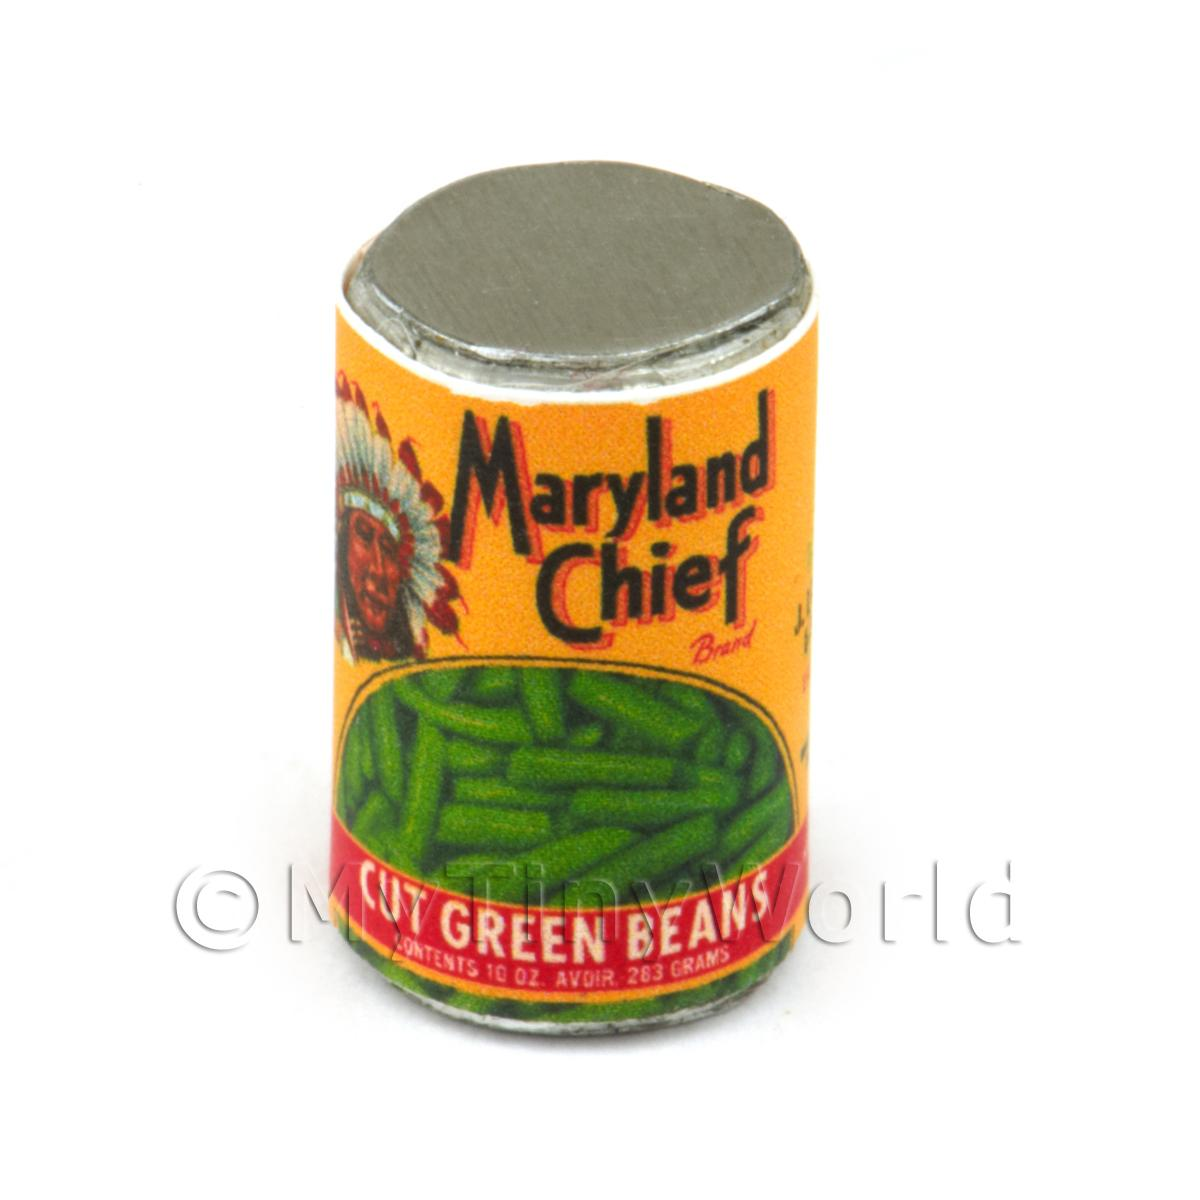 Dolls House Miniature Maryland Chief Green Beans Can (1930s)